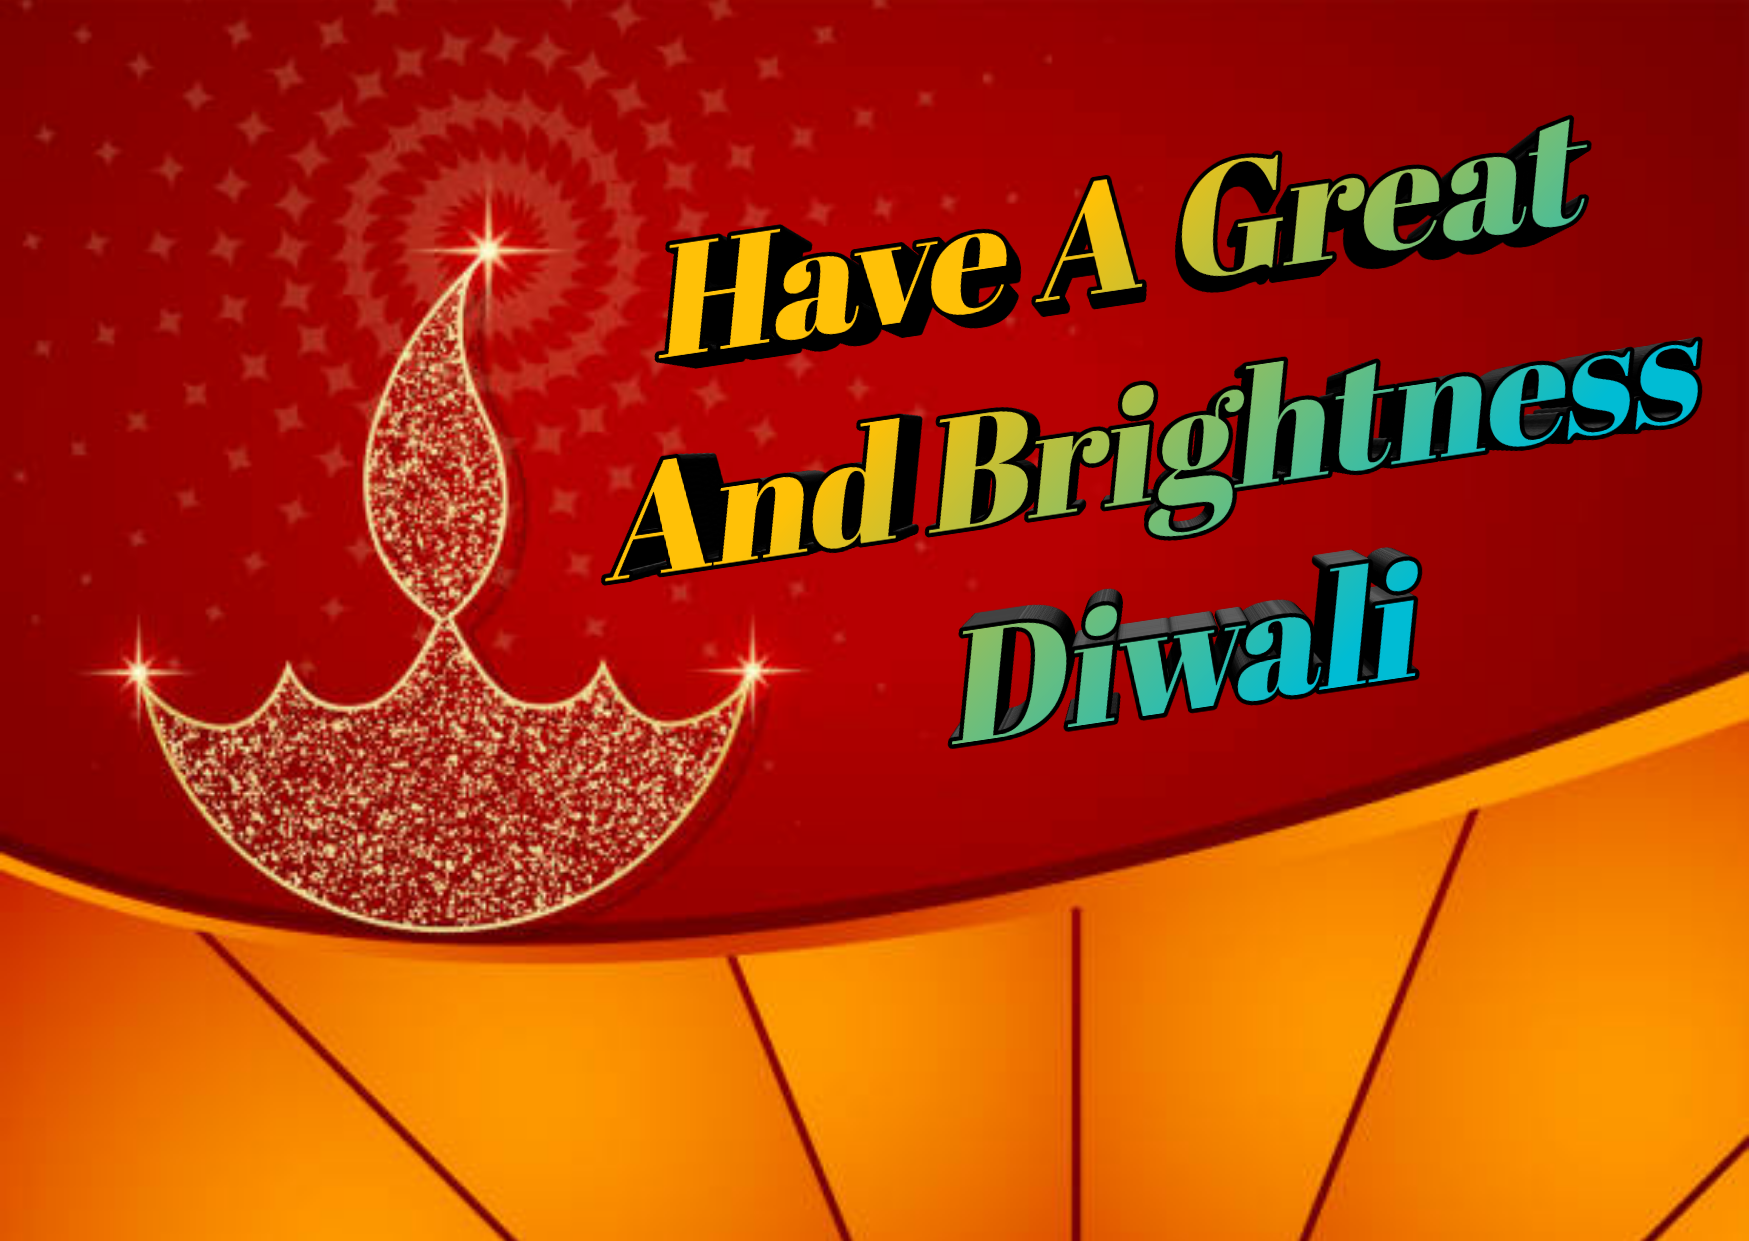 Happy Diwali Wishes, Images, quotes, status, greeting, for whatsapp free download,